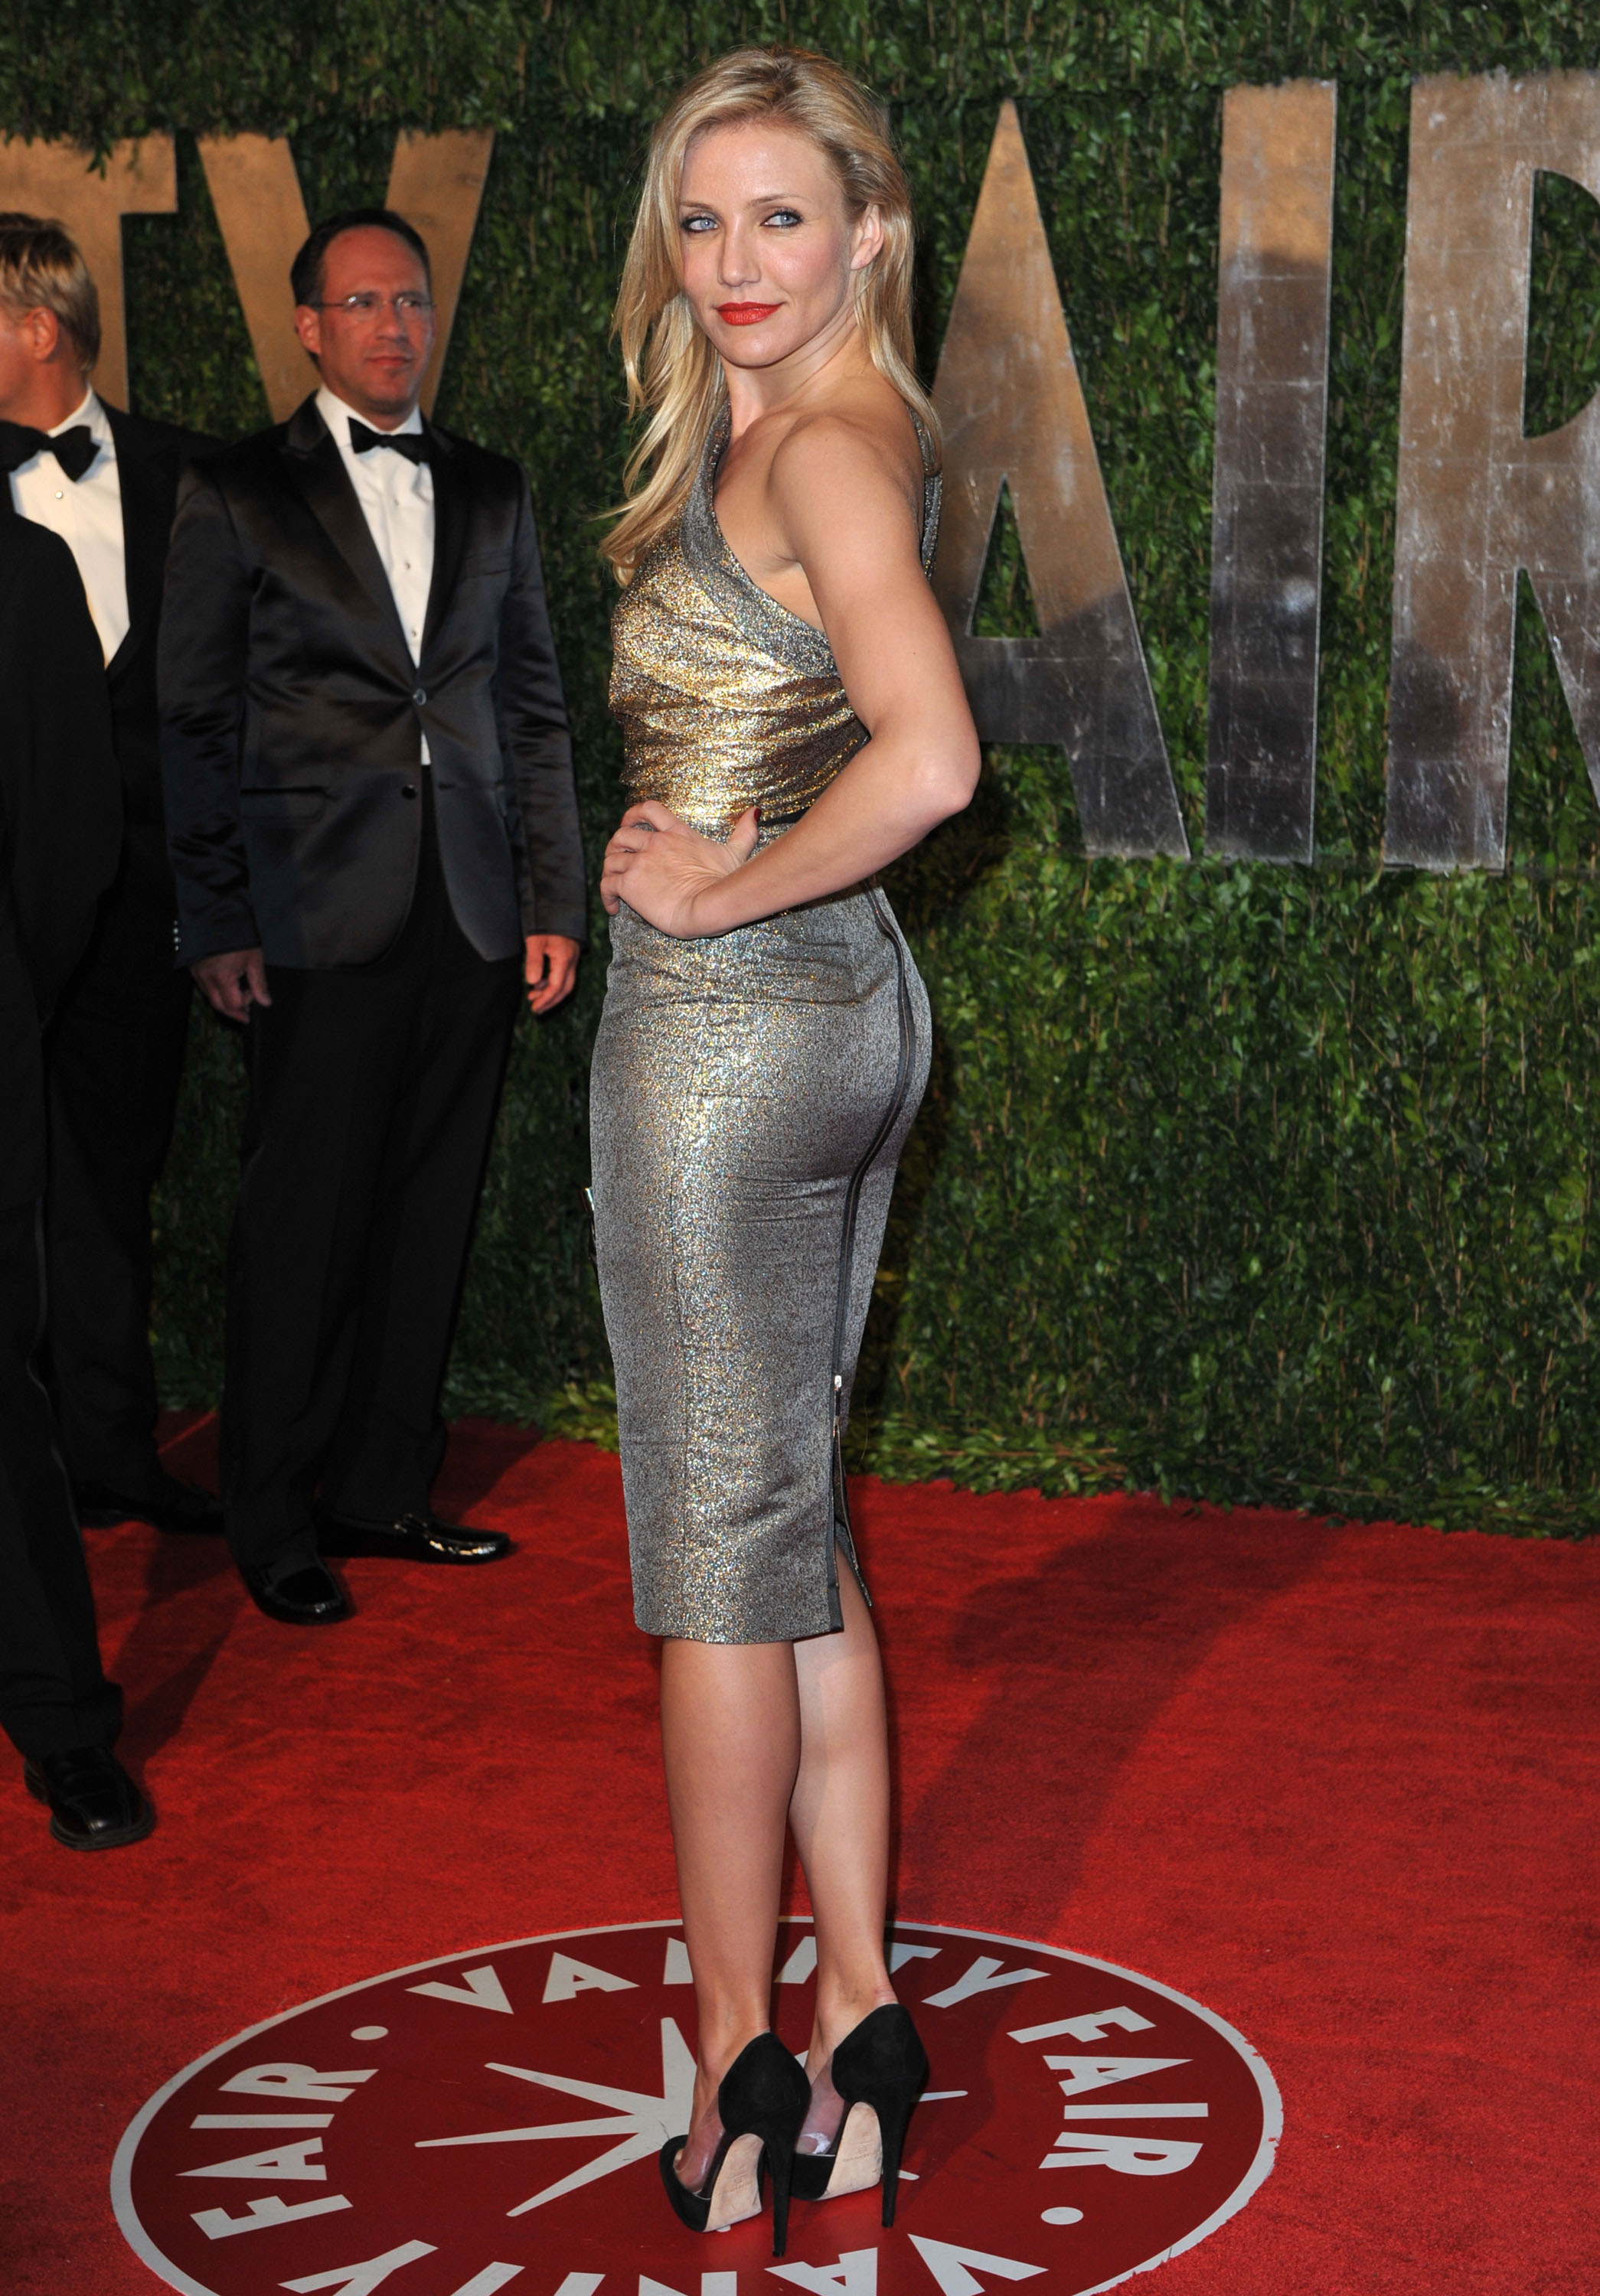 latest hollywood gallery: cameron diaz dresses pictures